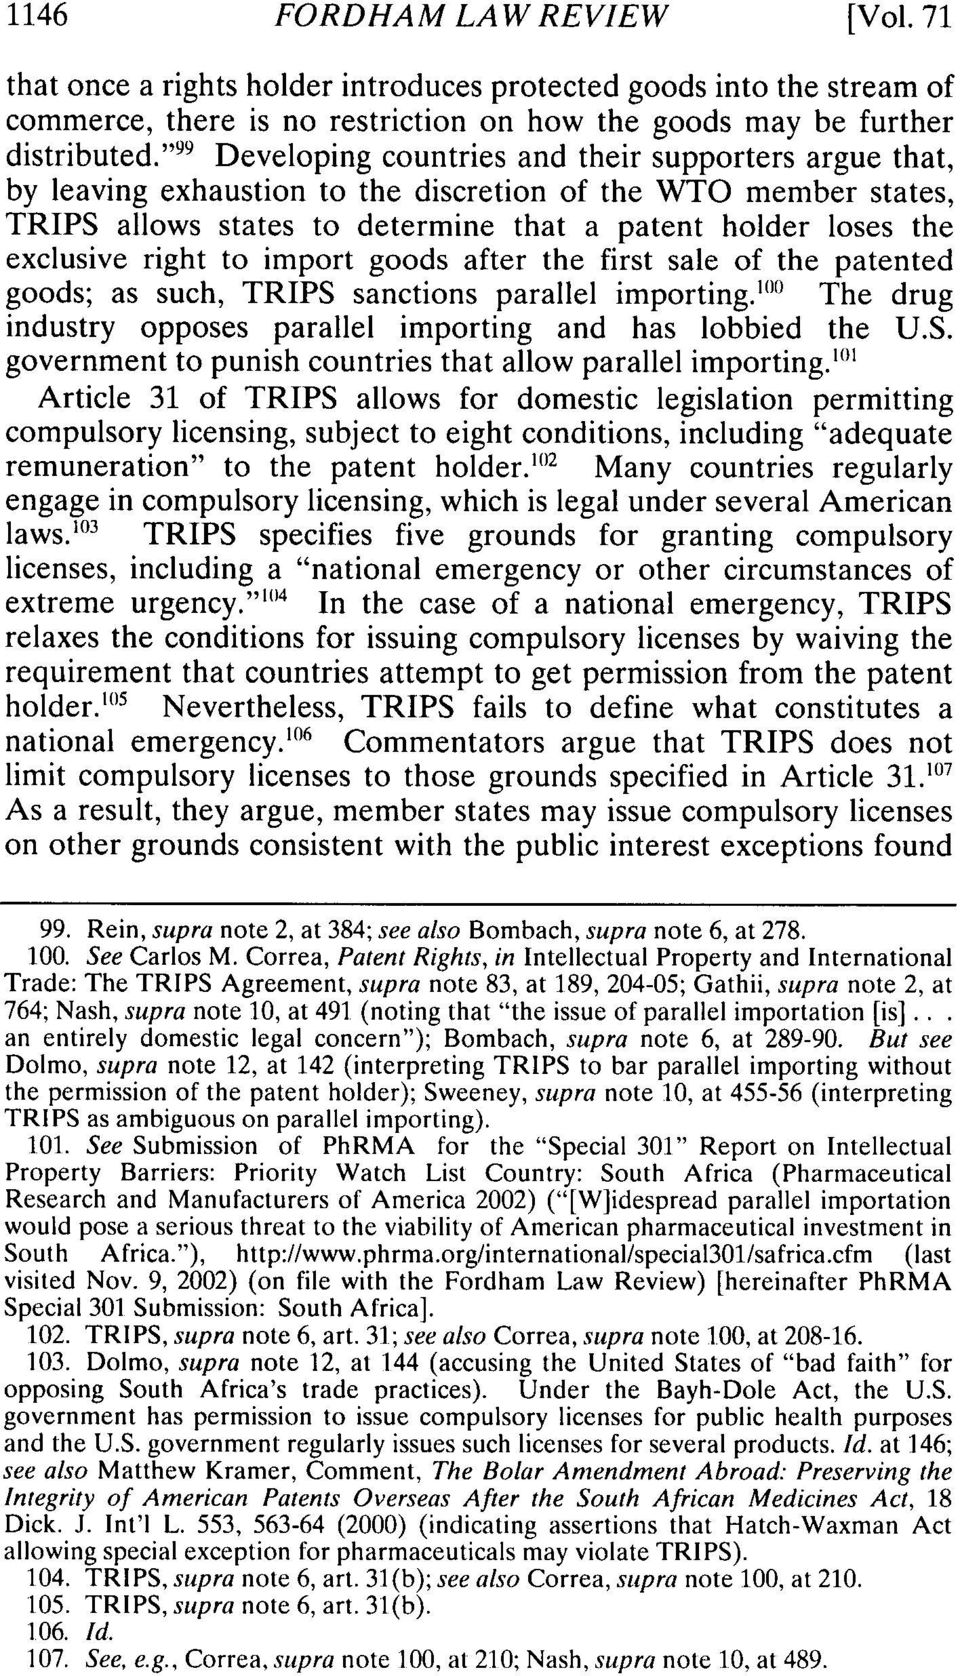 "right to import goods after the first sale of the patented goods; as such, TRIPS sanctions parallel importing. 1 """" 1 The drug industry opposes parallel importing and has lobbied the U.S. government to punish countries that allow parallel importing."